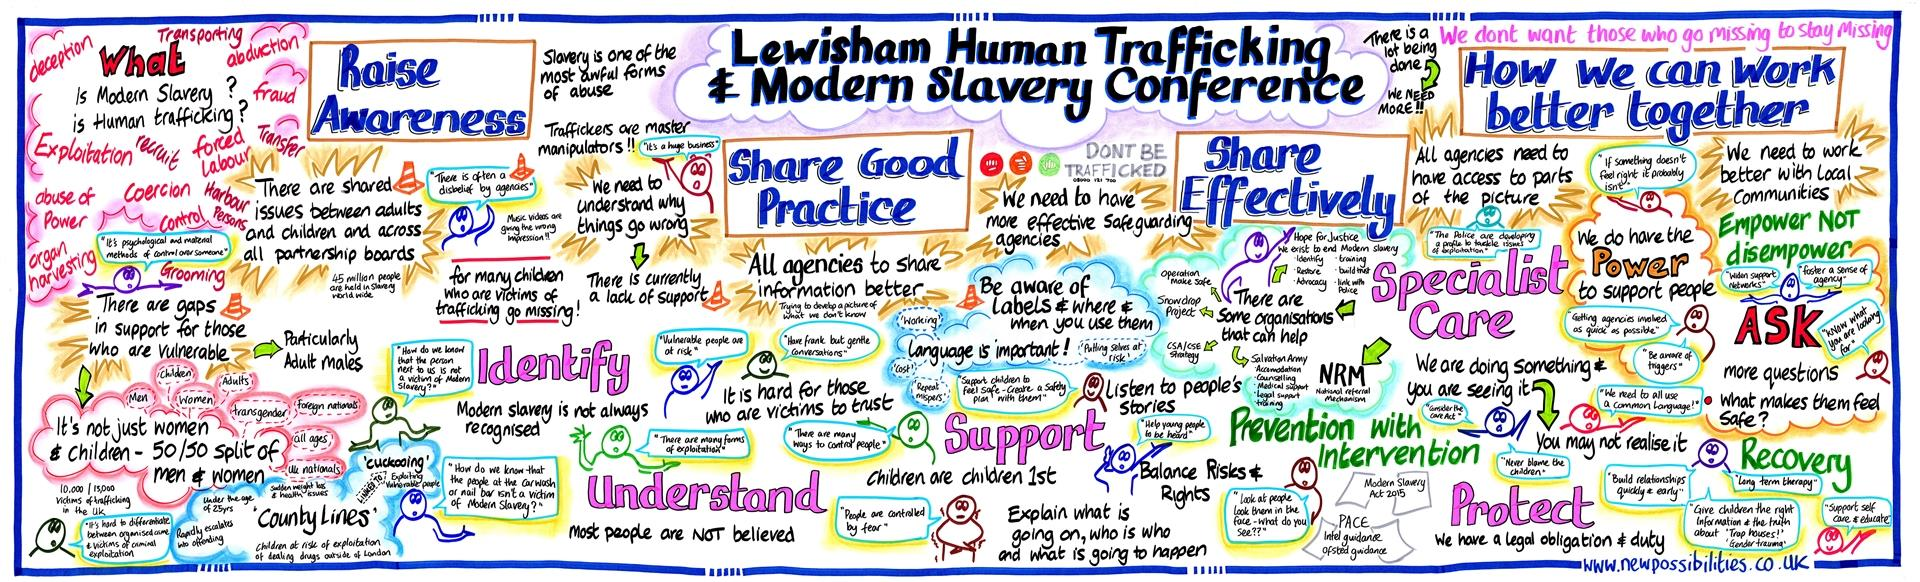 Human Trafficking and Modern Slavery Graphic Board